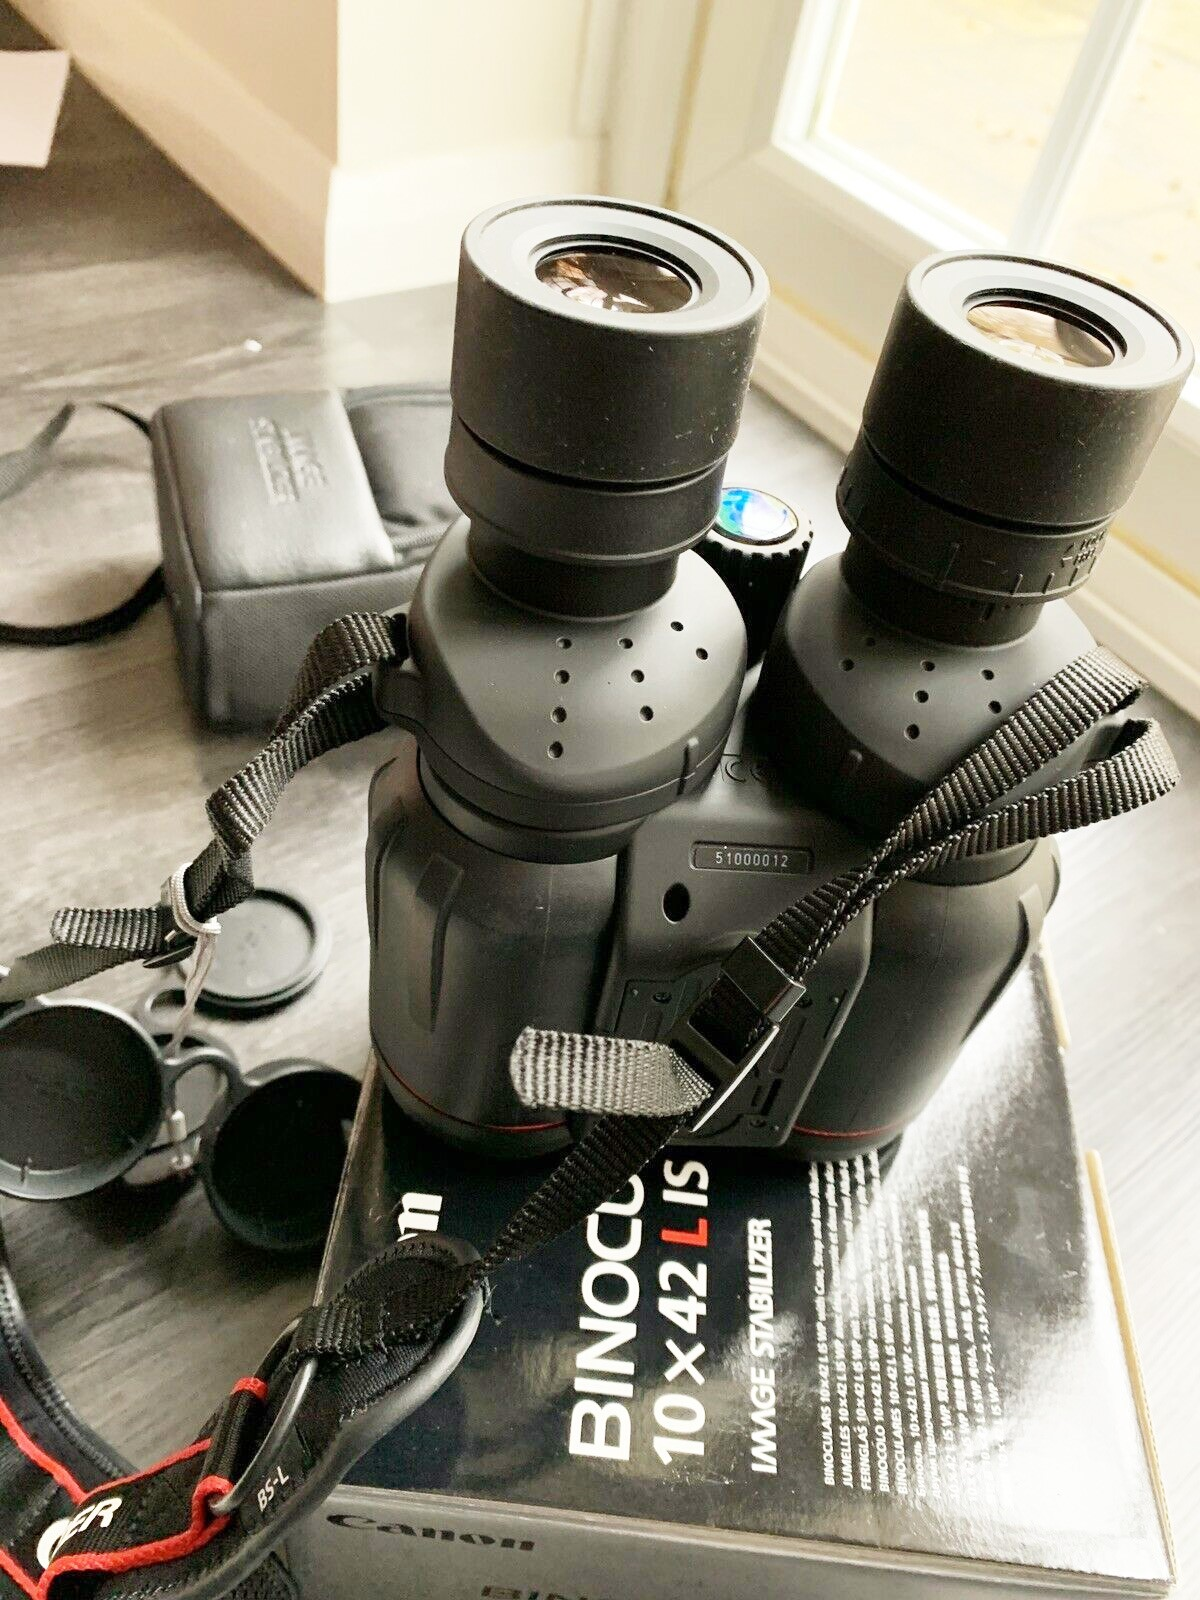 Canon Binoculars 10x42 L IS WP Image Stabilized - Barely Used.